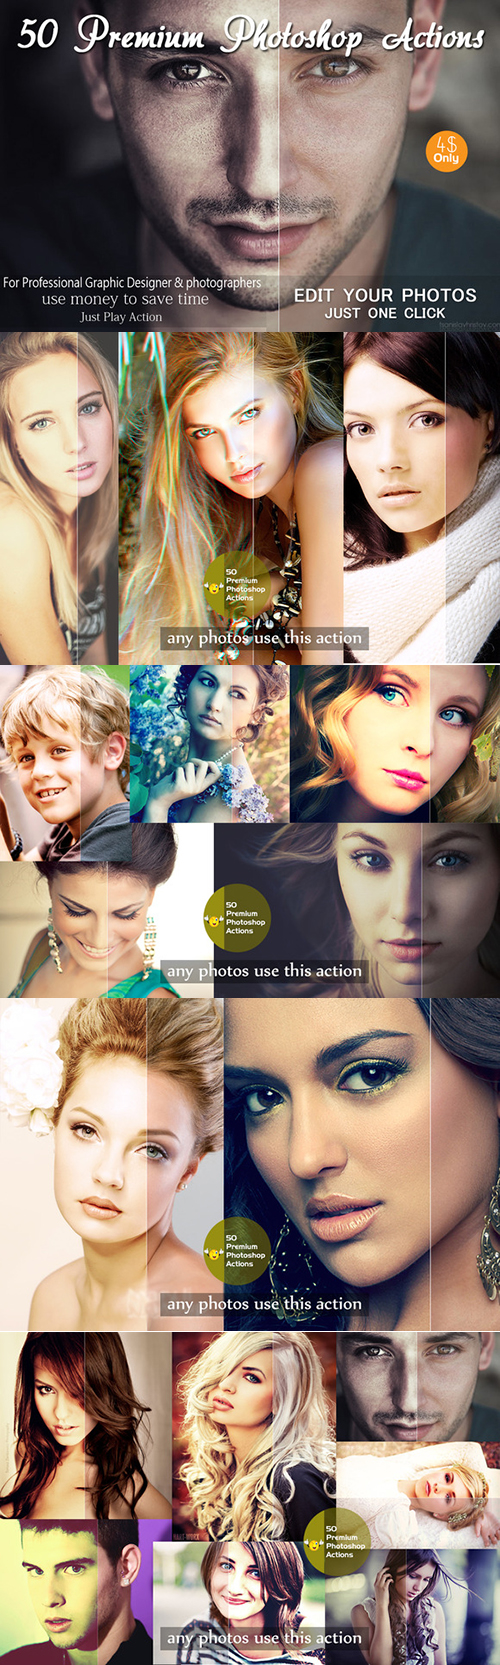 Creativemarket_50_Premium_Photoshop_Actions_227012_cap01